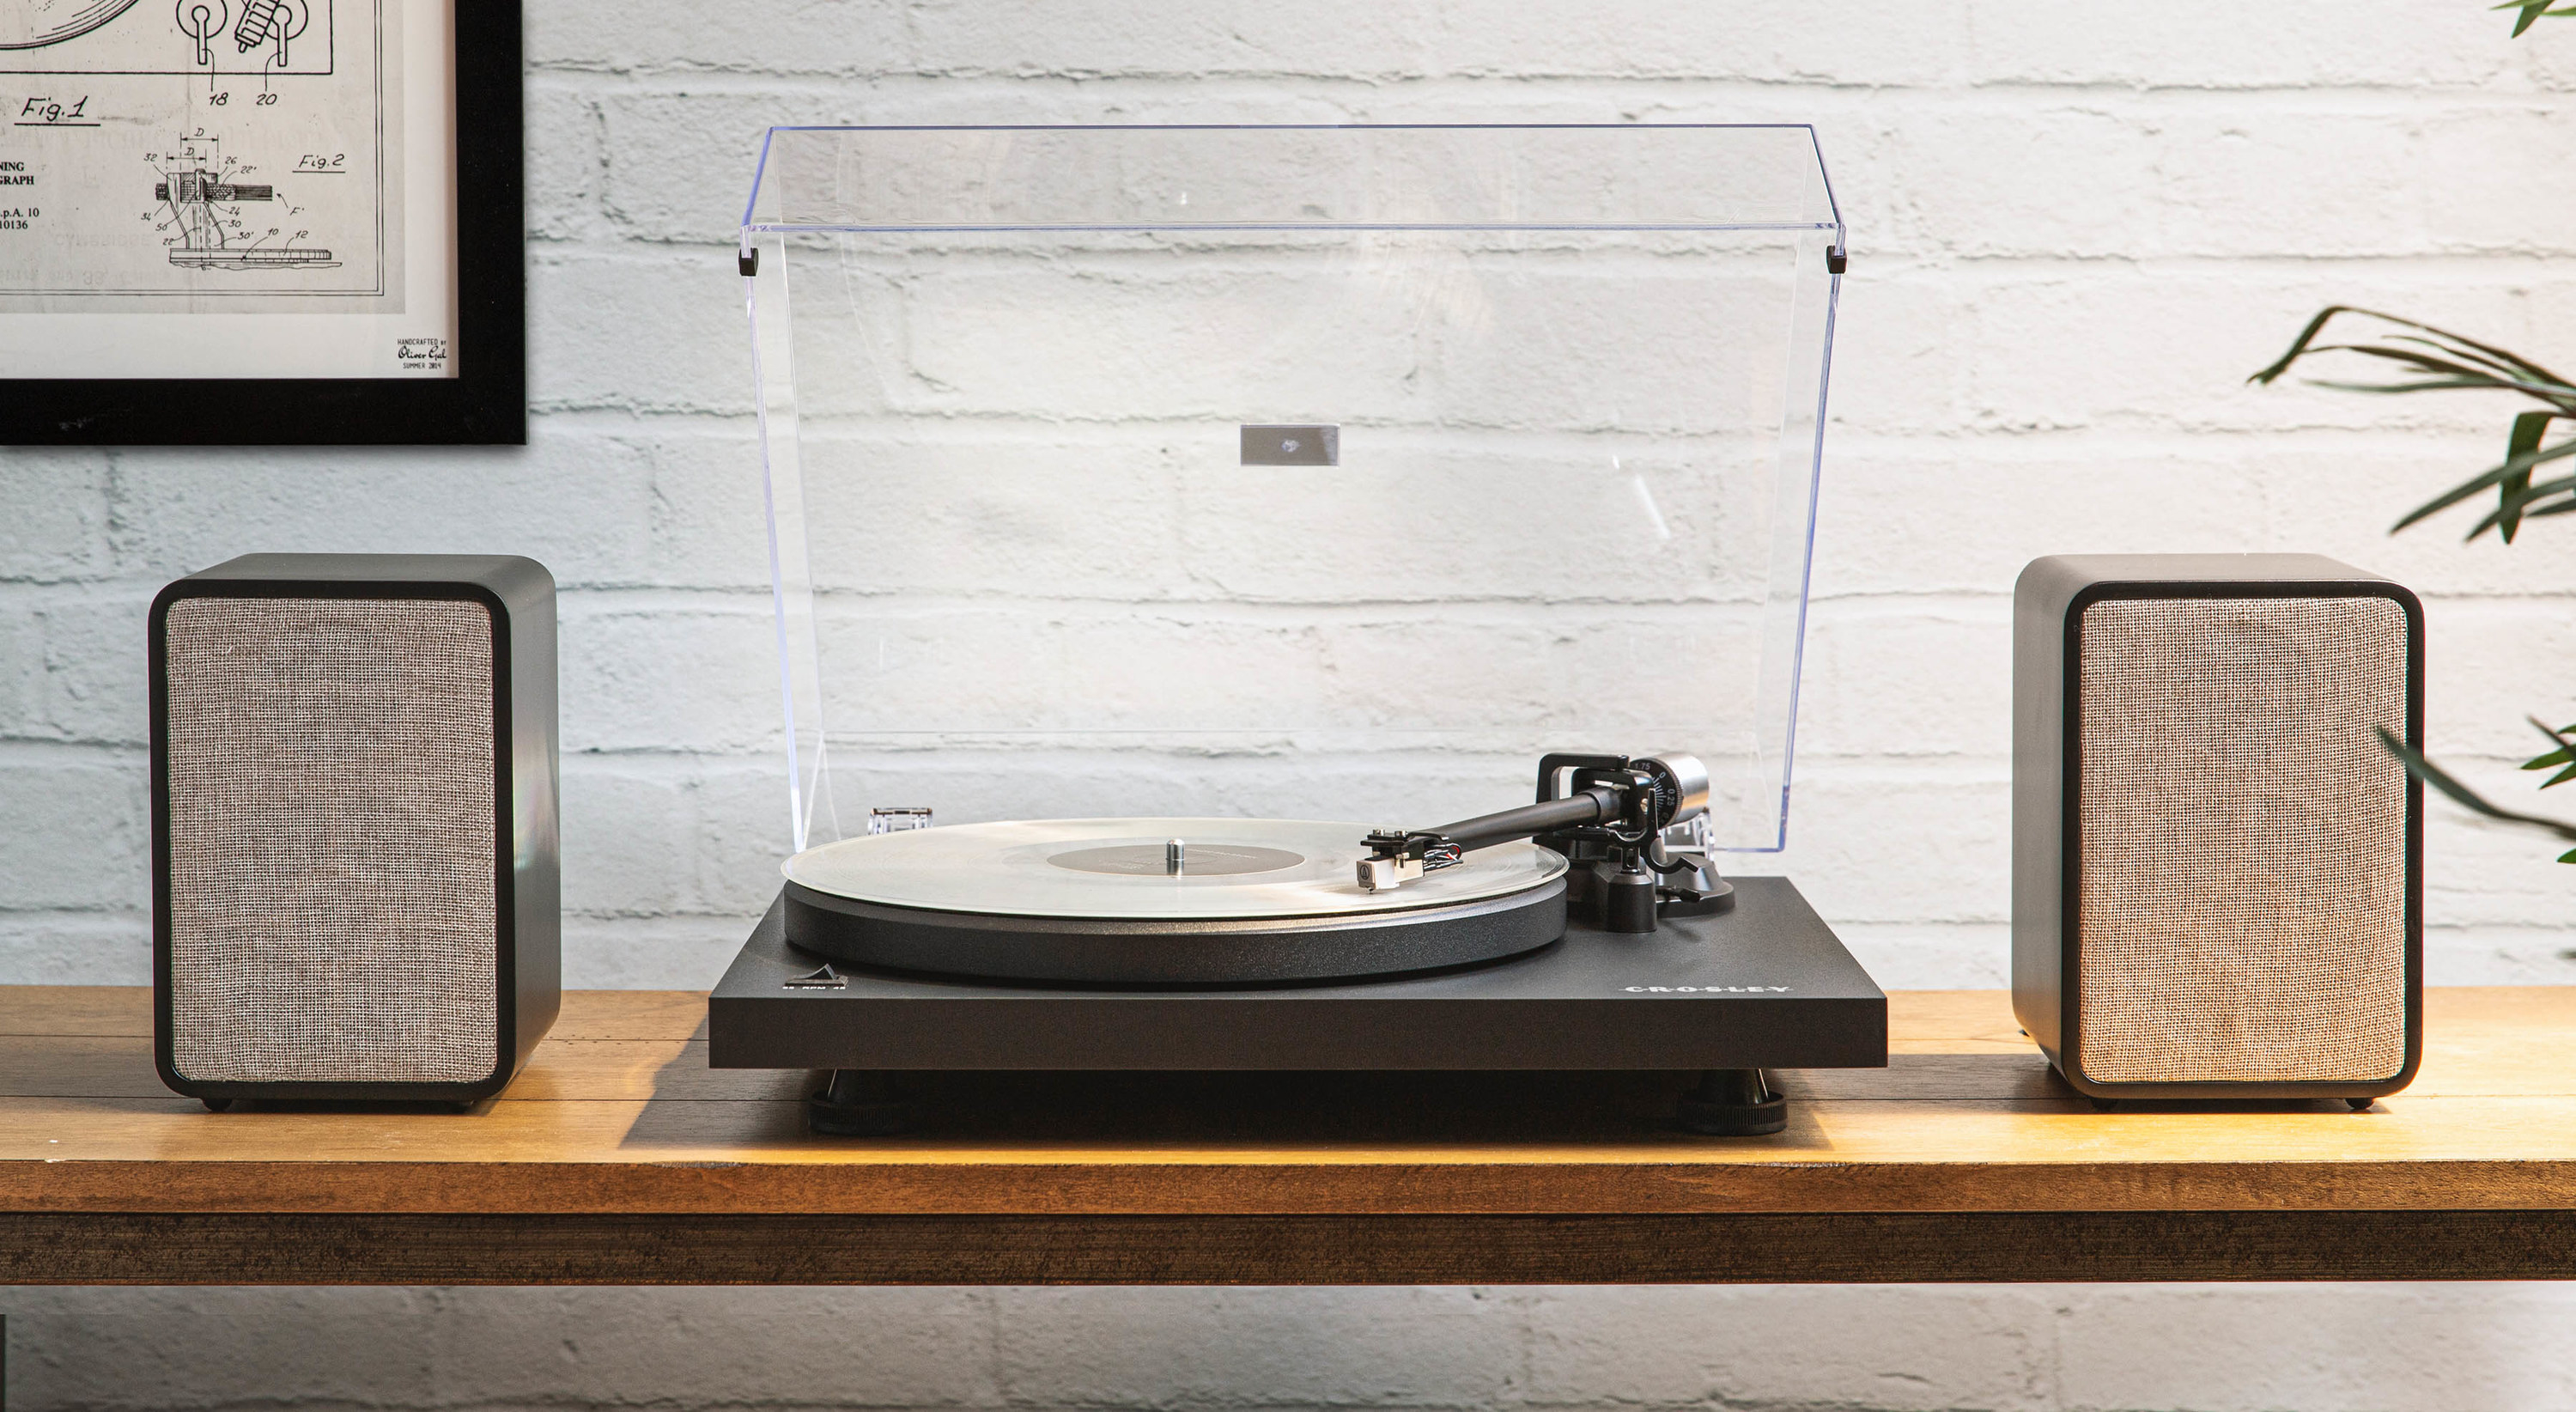 bluetooth vinyl record player with two speakers next to it